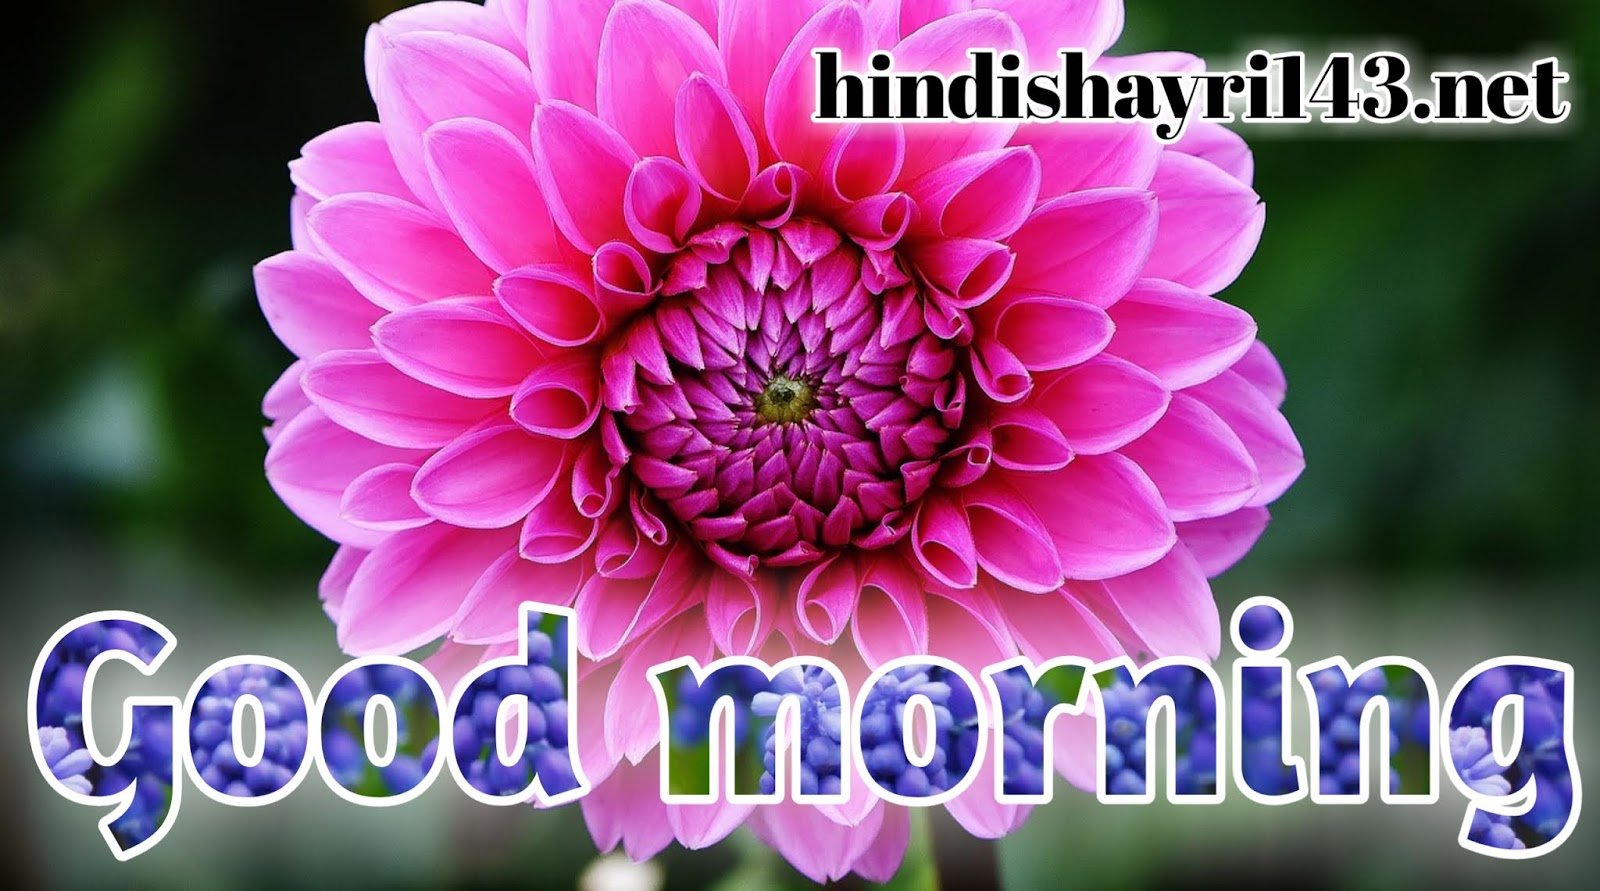 500 Good Morning Rose Image Good Morning Images With Rose Flowers